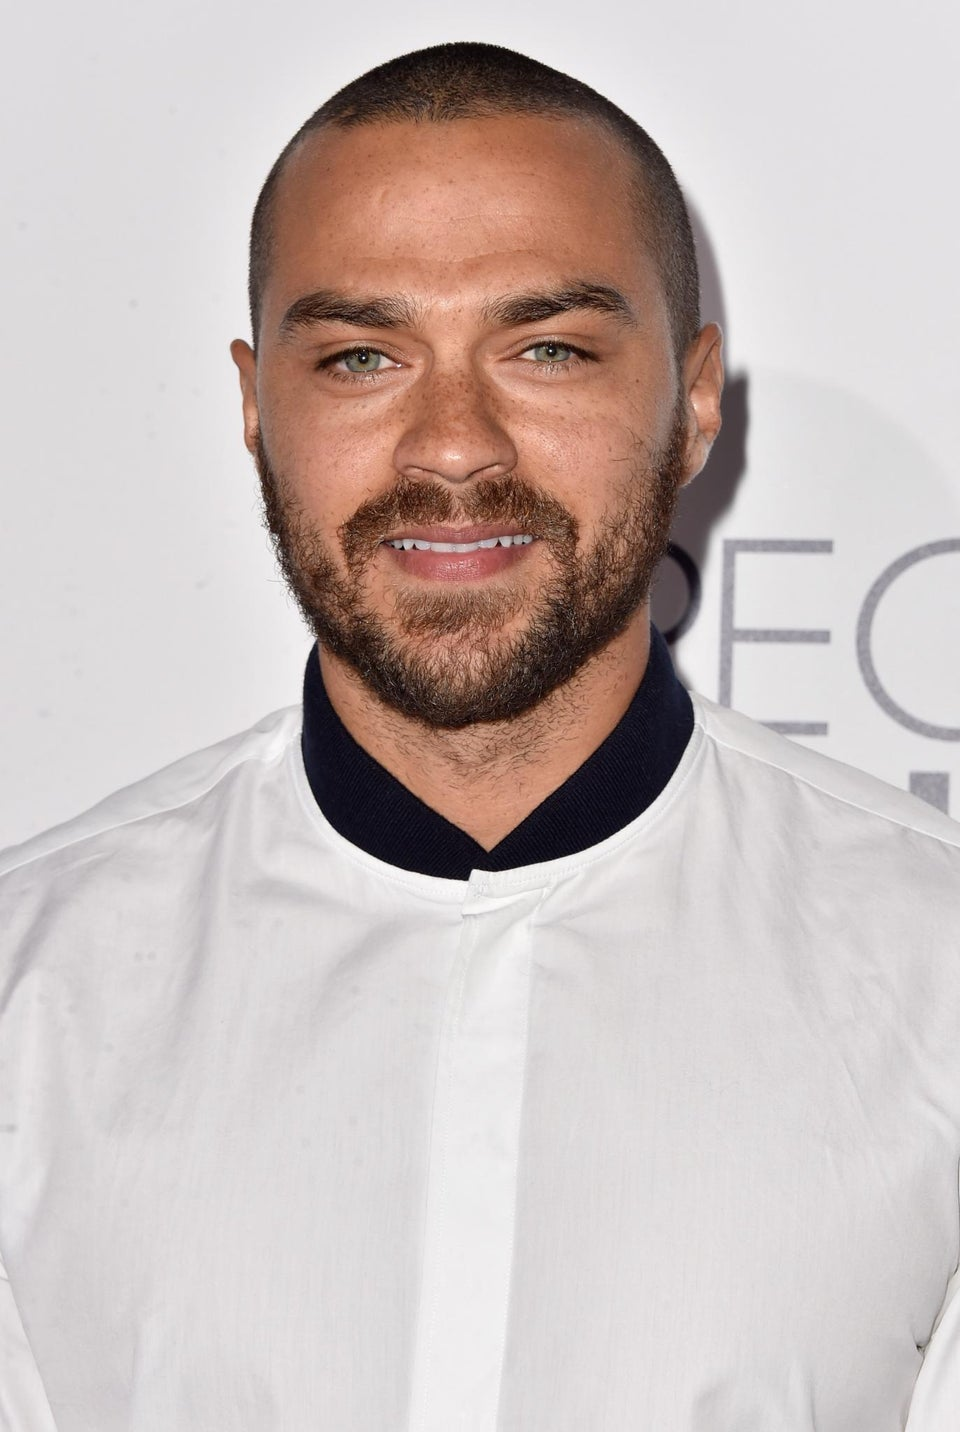 Jesse Williams Dispels 'Angry' Black Stereotype